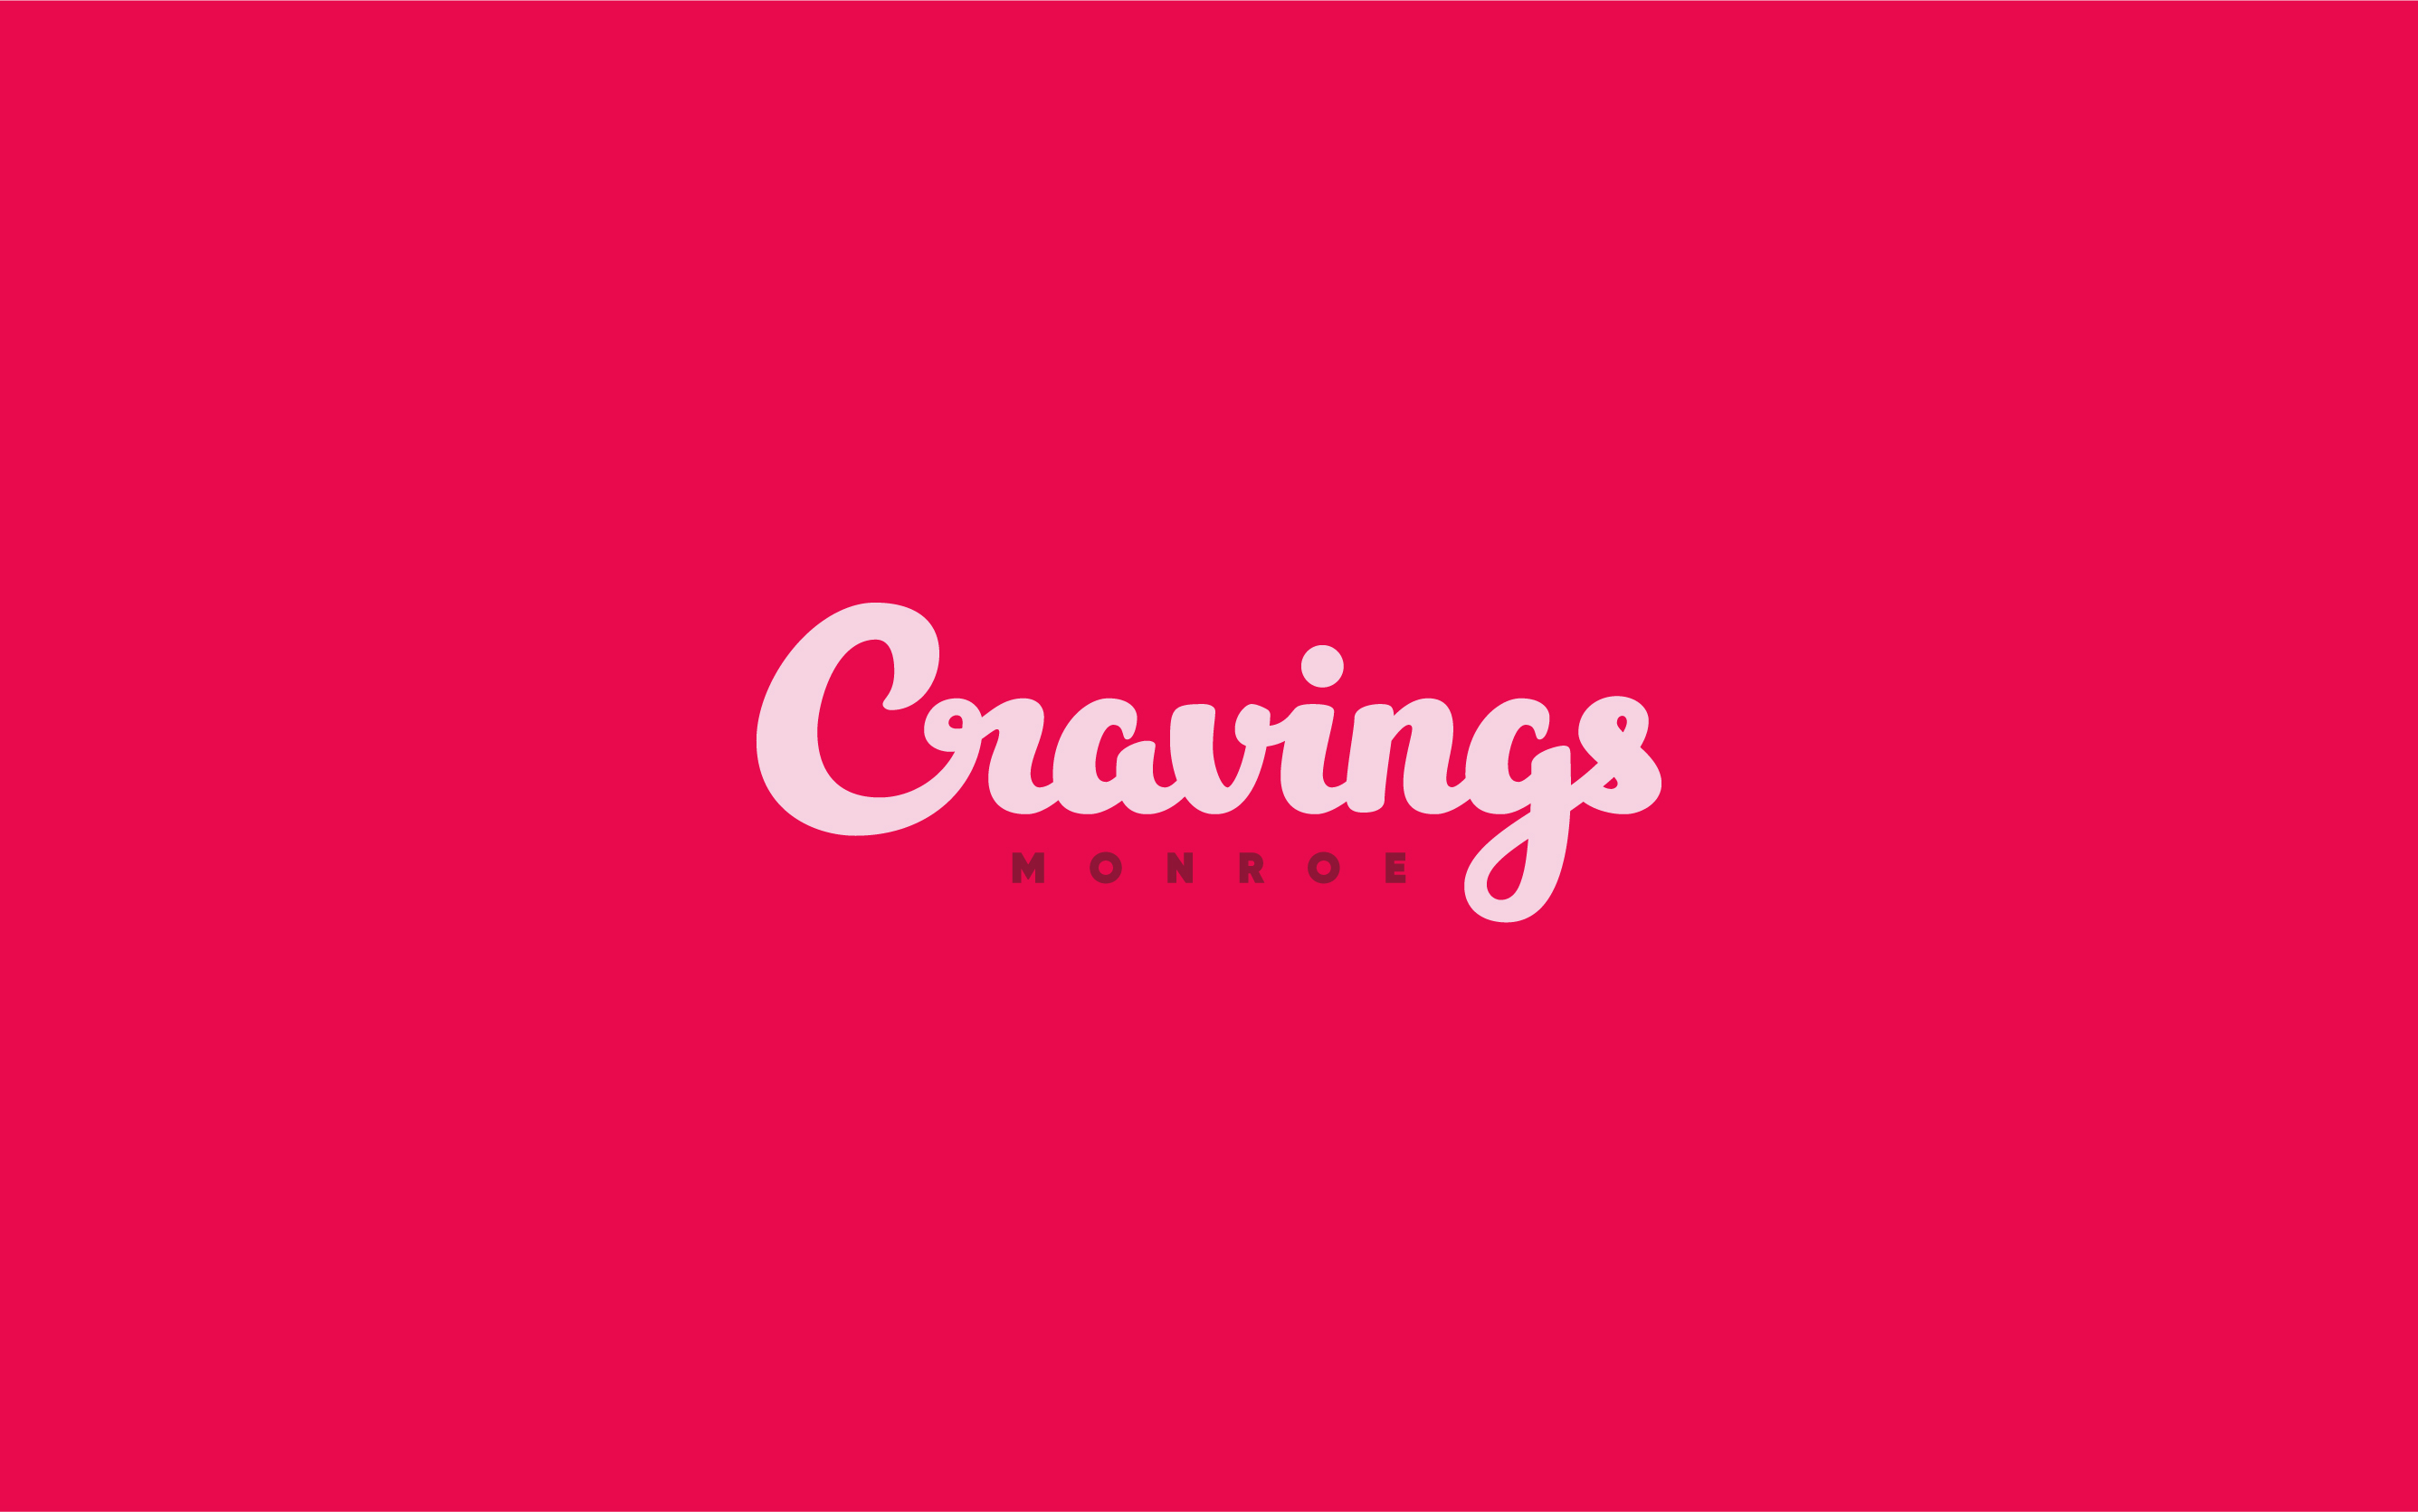 ETedesco-Cravings-17